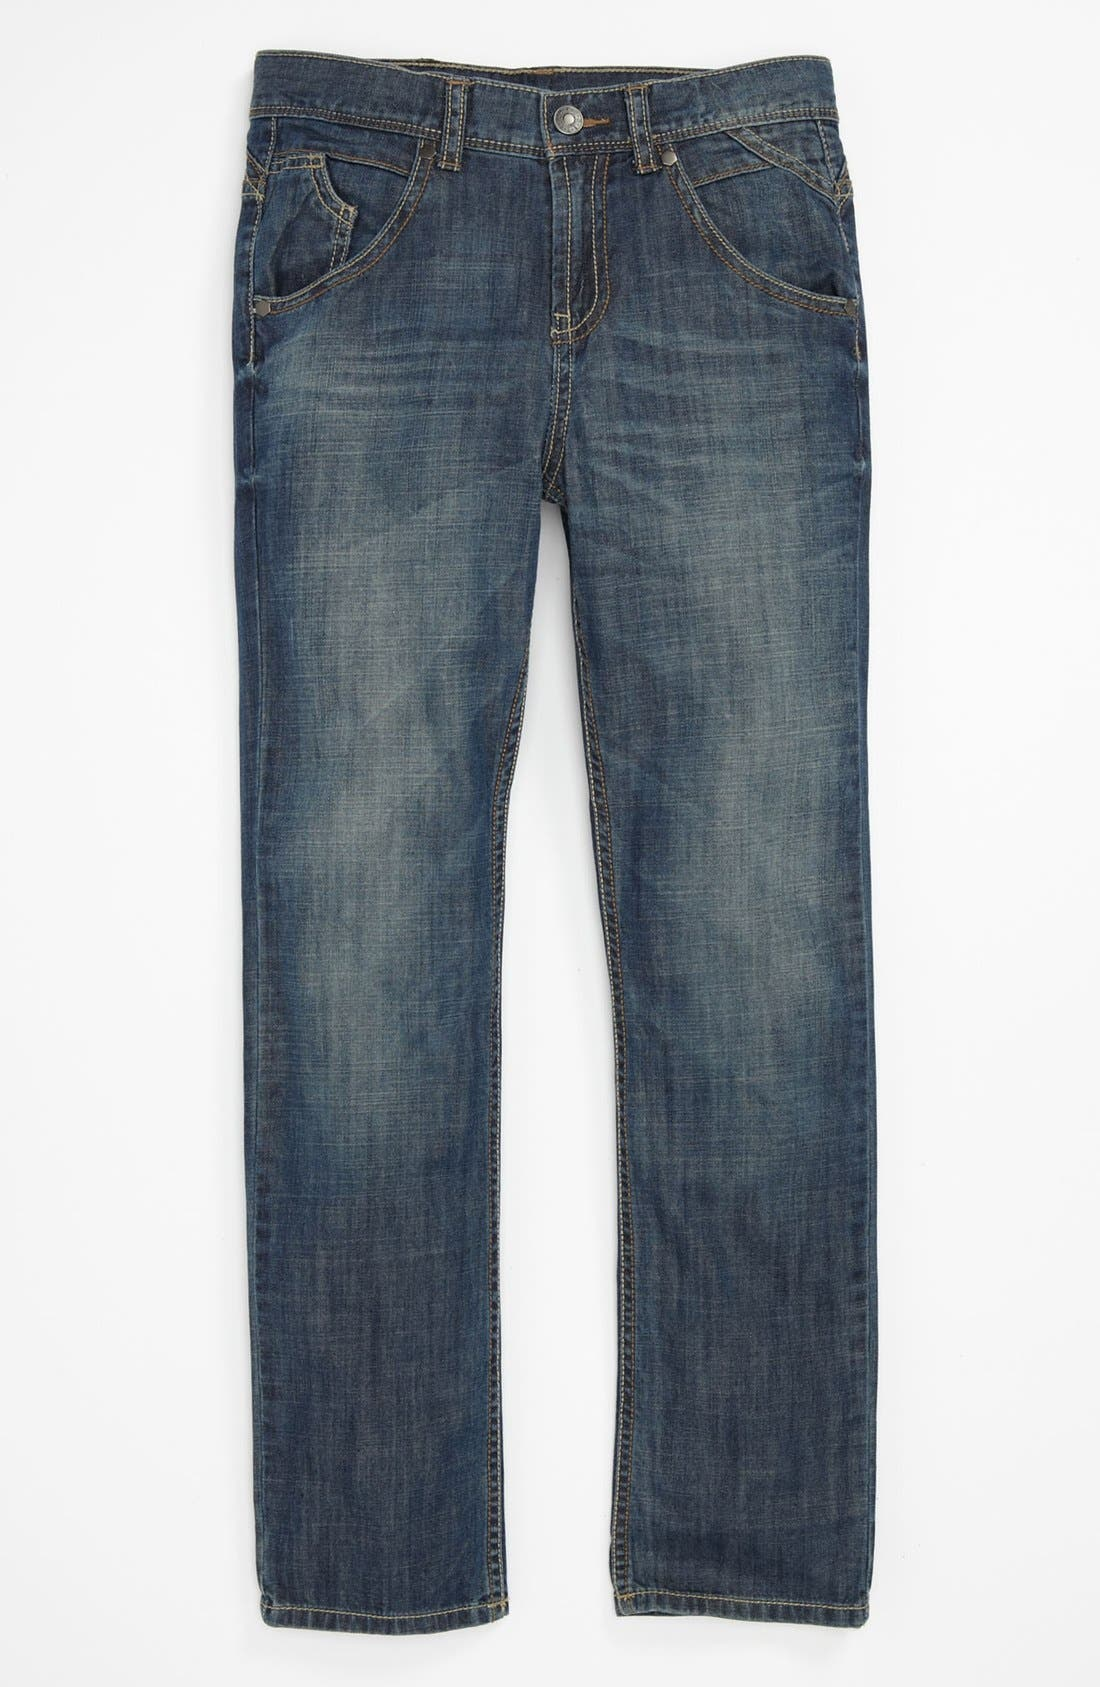 Alternate Image 1 Selected - United Colors of Benetton Kids Jeans (Big Boys)